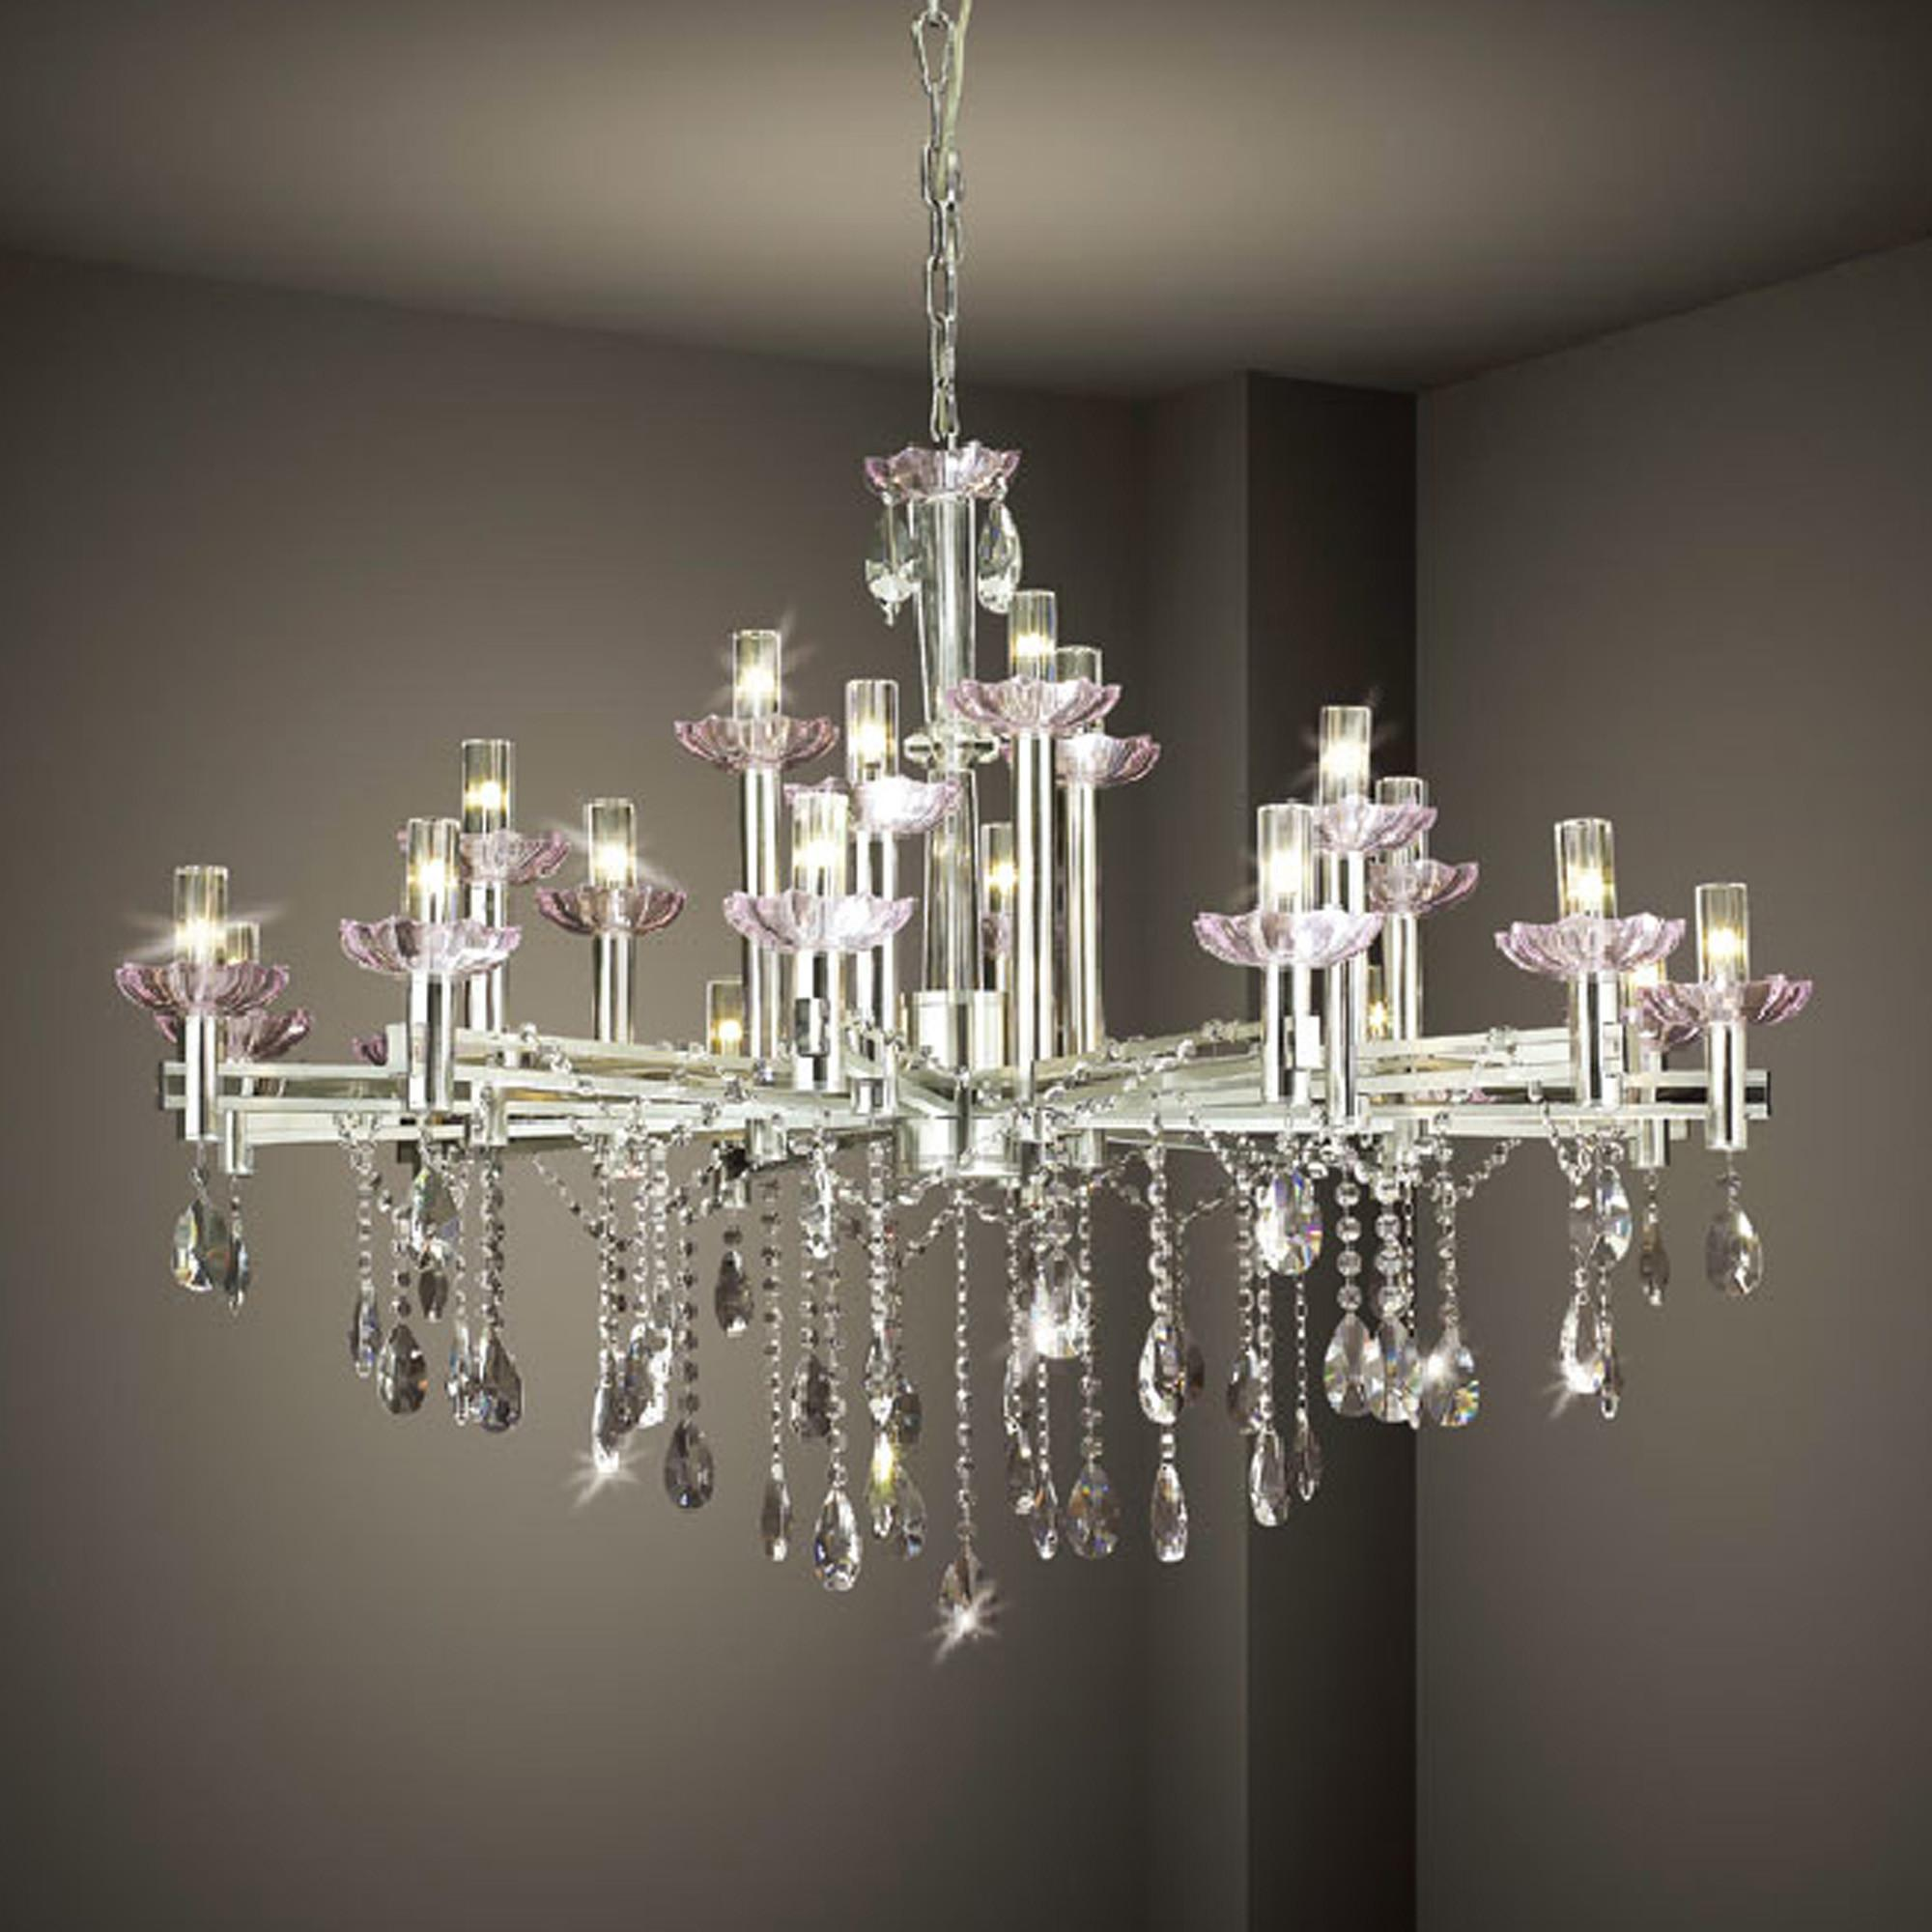 Hanging Modern Crystal Chandelier Lighting Stainless